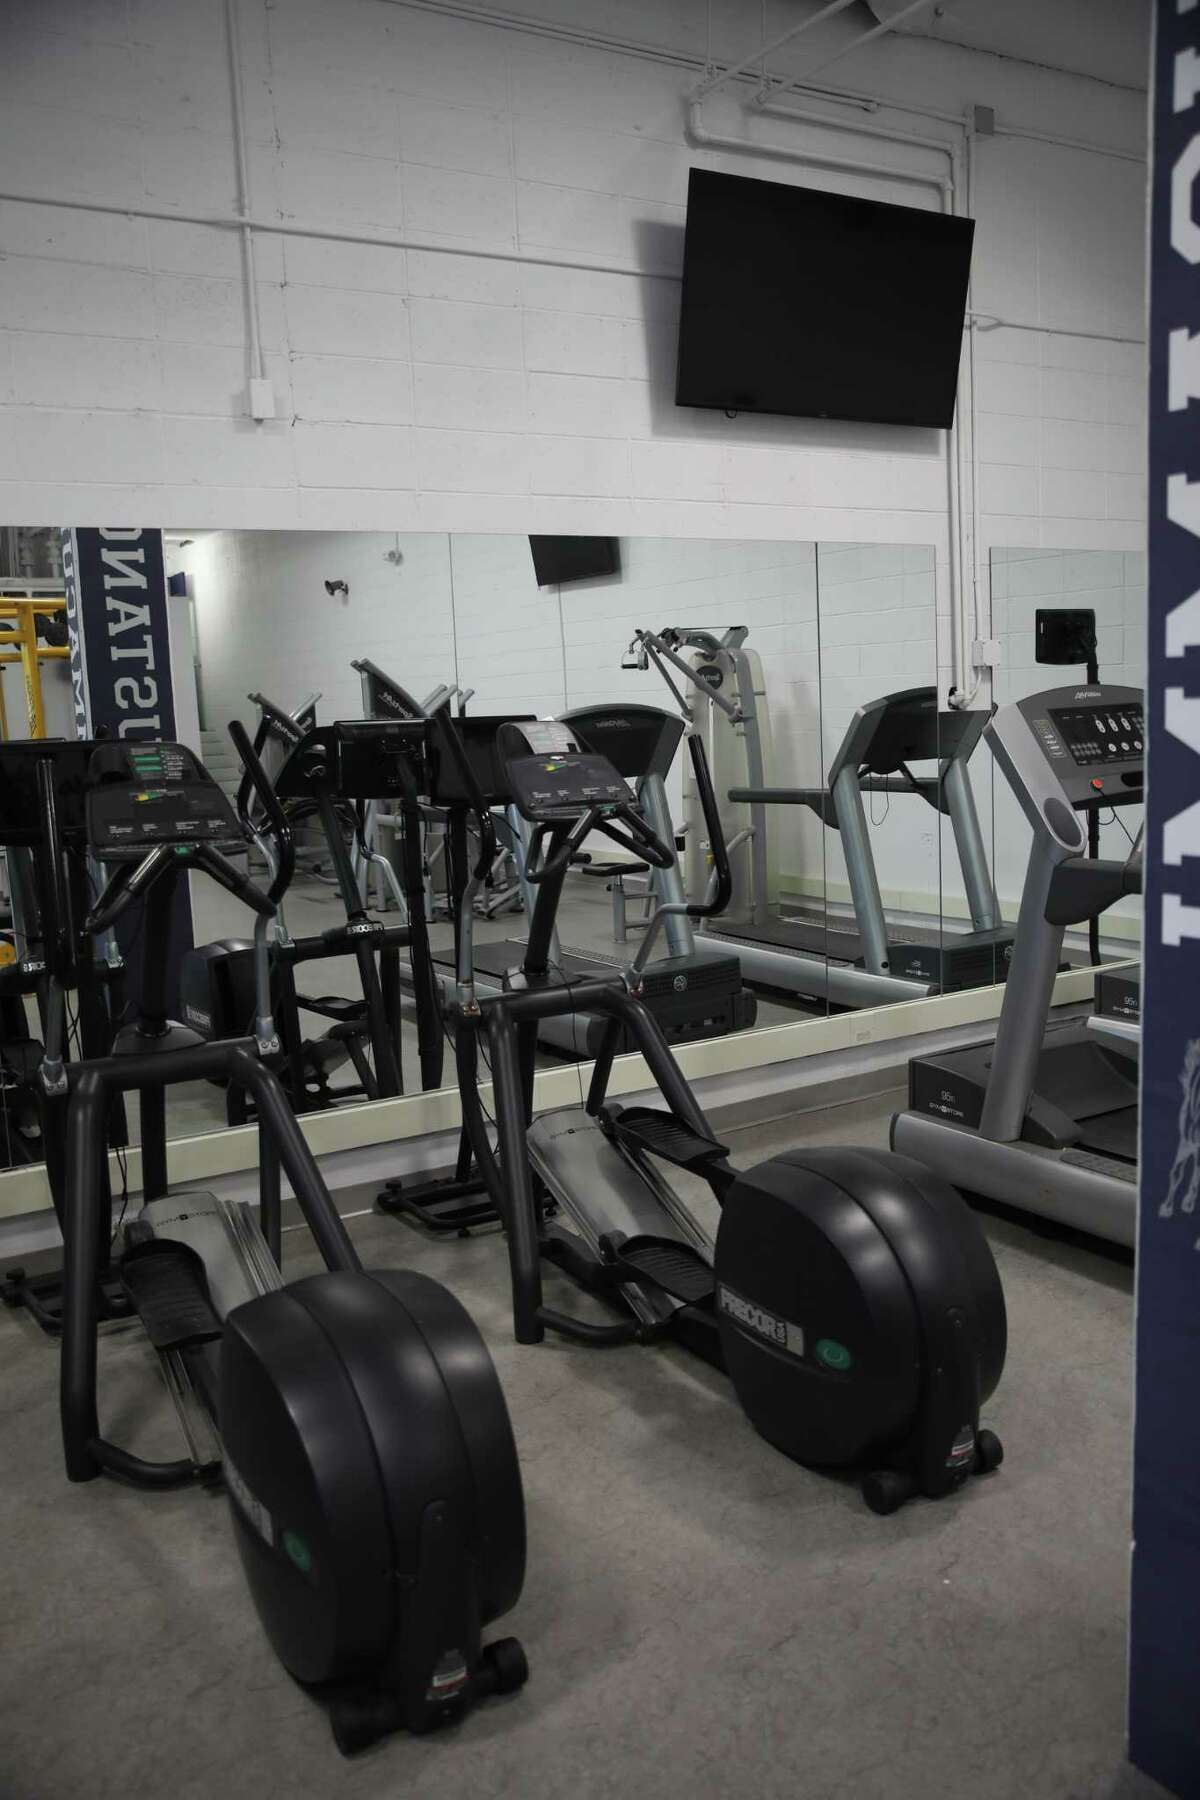 Immaculate High School unveiled a new fitness center for students, built and designed by community members.